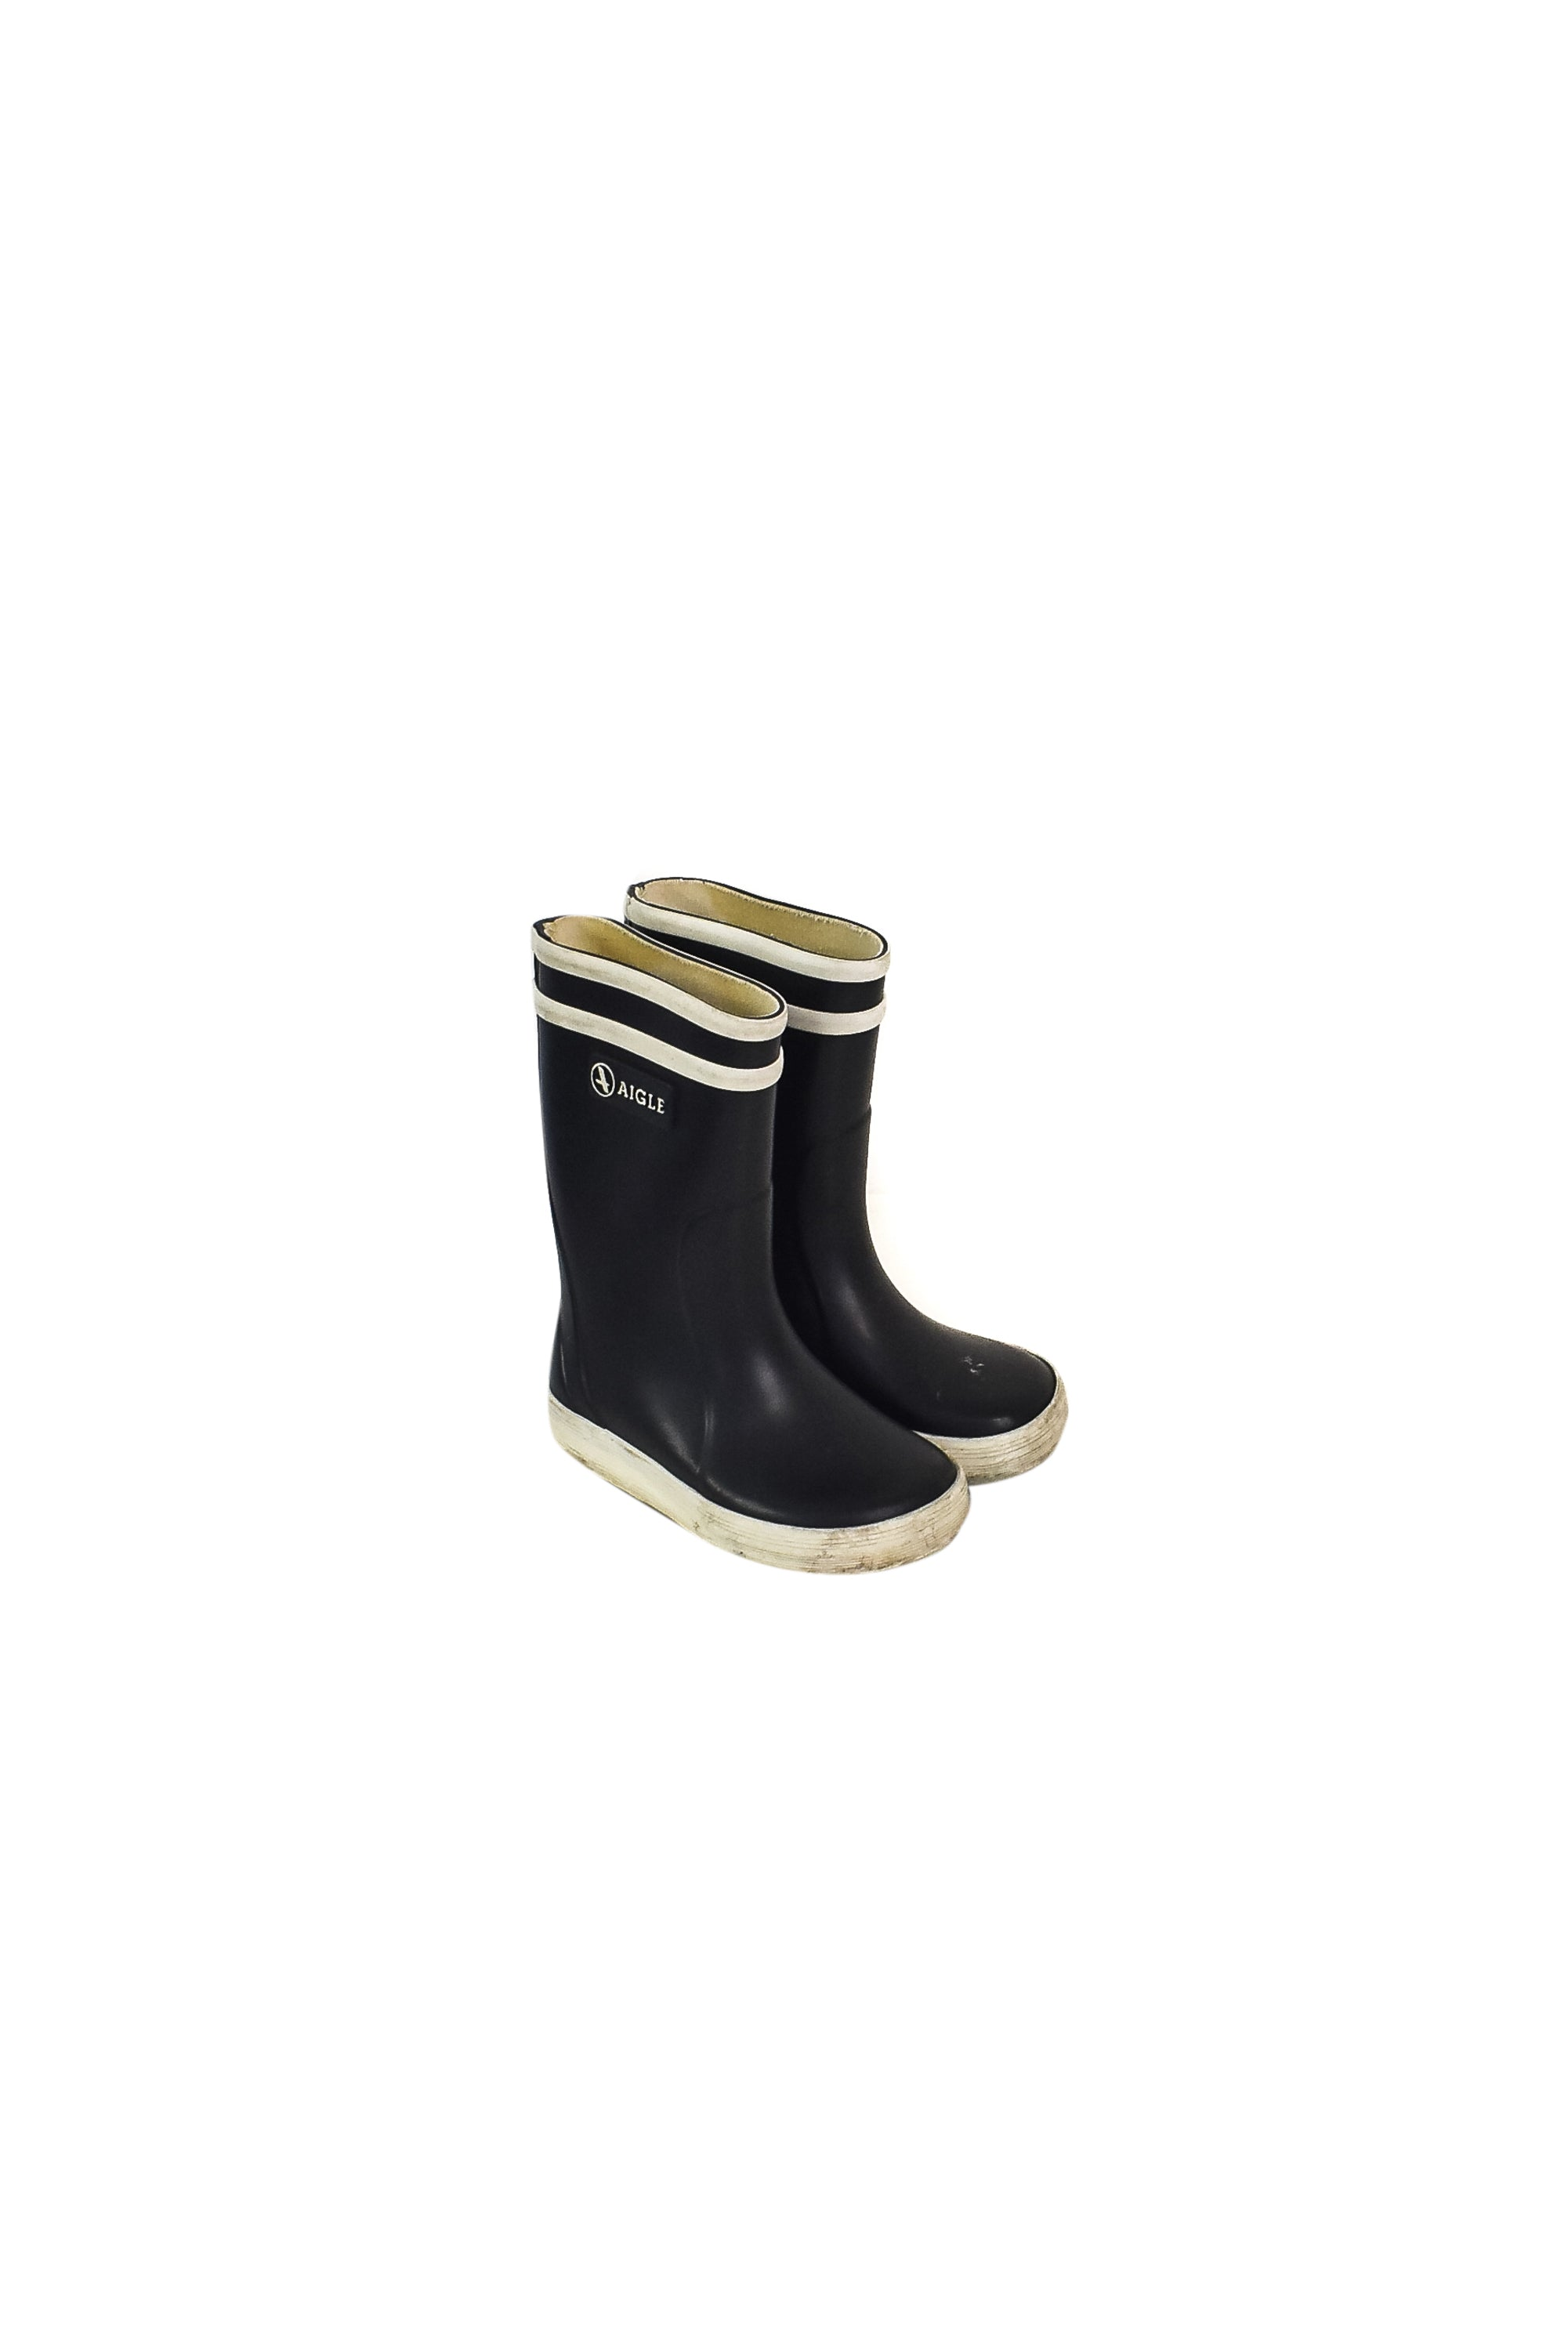 10033393 Aigle Baby~Rain Boots 18-24M (EU 22) at Retykle